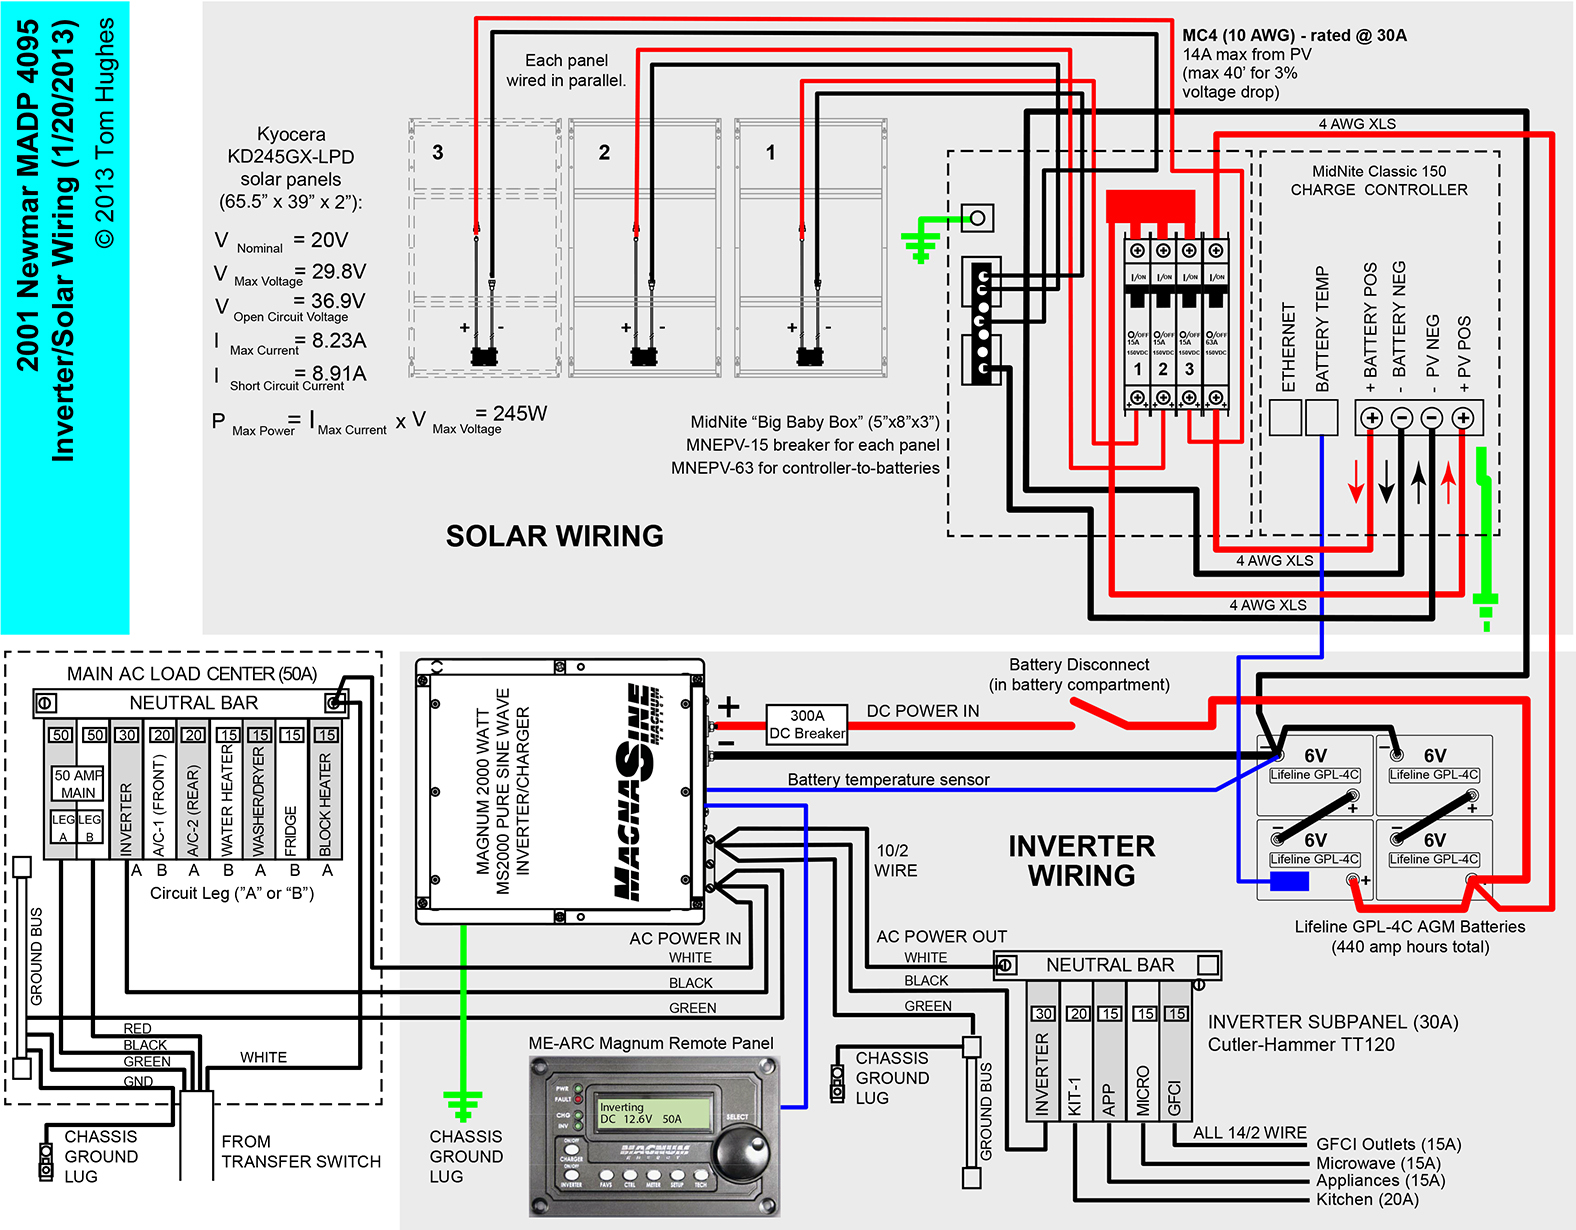 ms2000_newmar_inverter_wiring_01_20_2013 rv inverter diagram rv inverter transfer switch \u2022 wiring diagrams grid tie inverter wiring diagram at soozxer.org